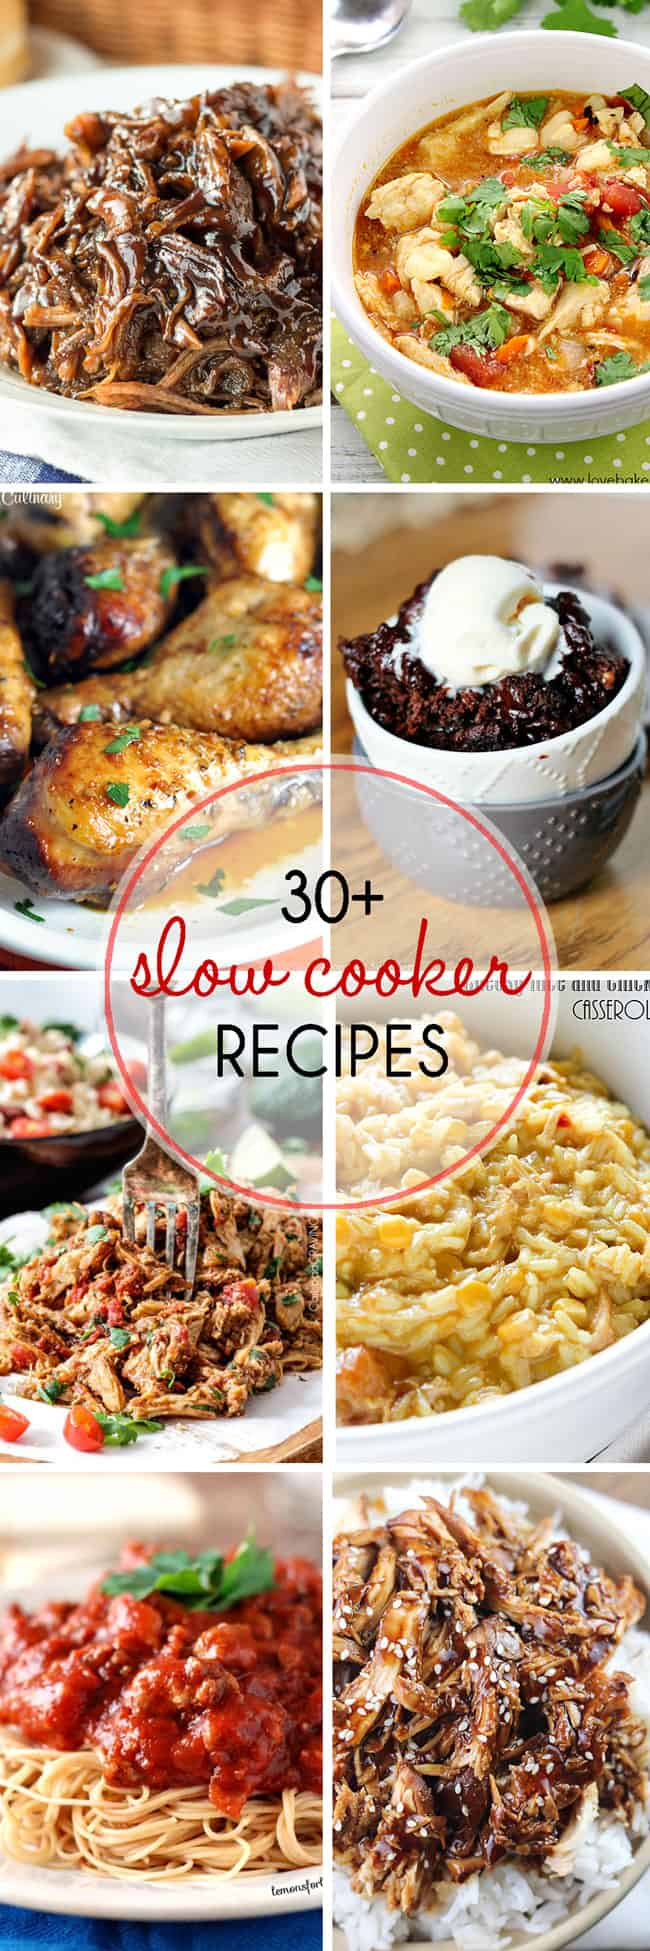 Over 30 Slow Cooker Recipes to make weekday meals easy!